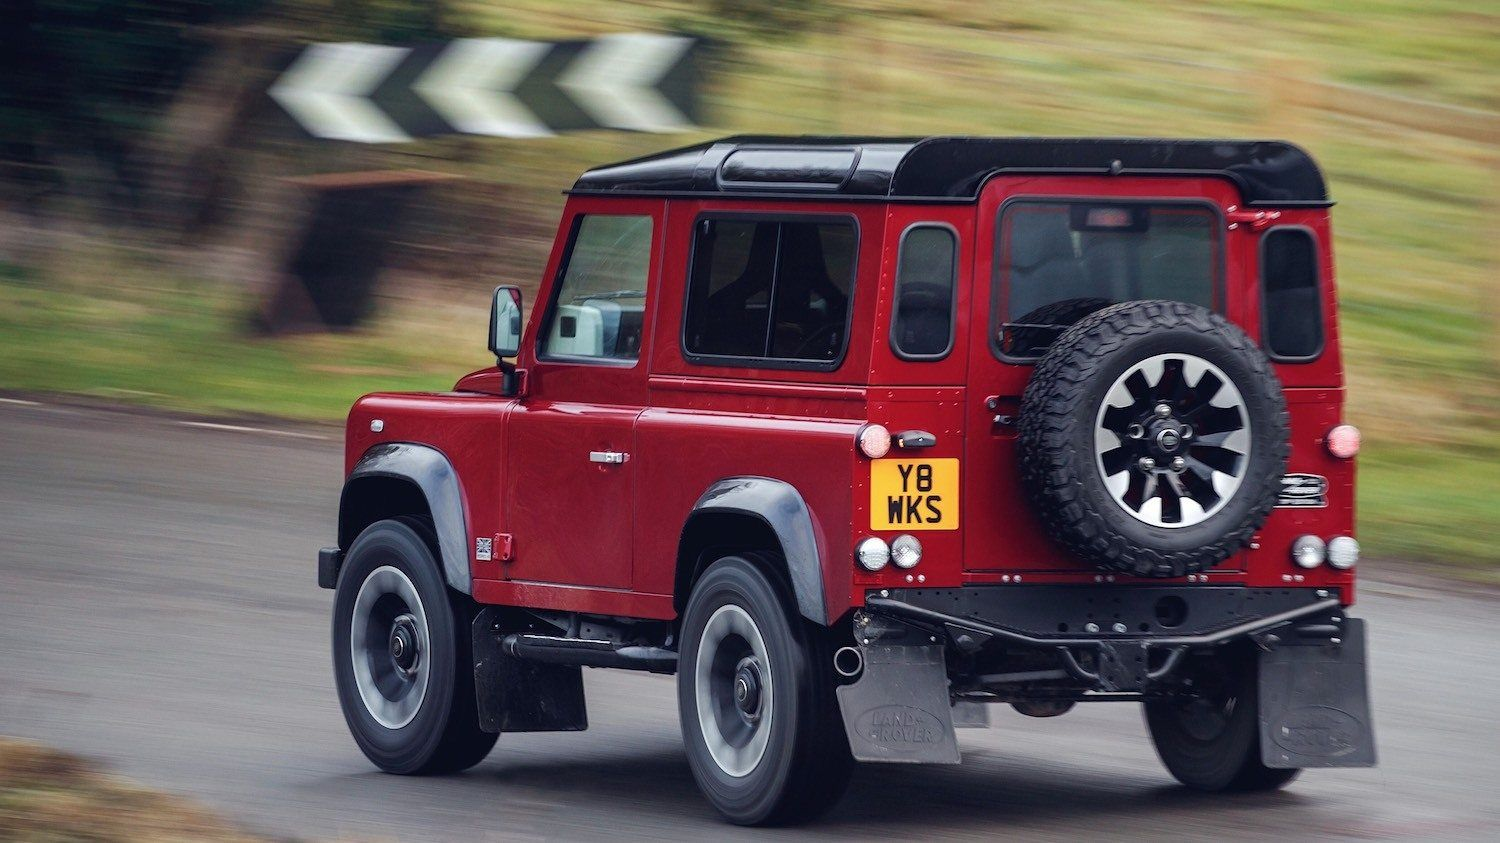 to the Defender 70th Edition and it's a V8 Land